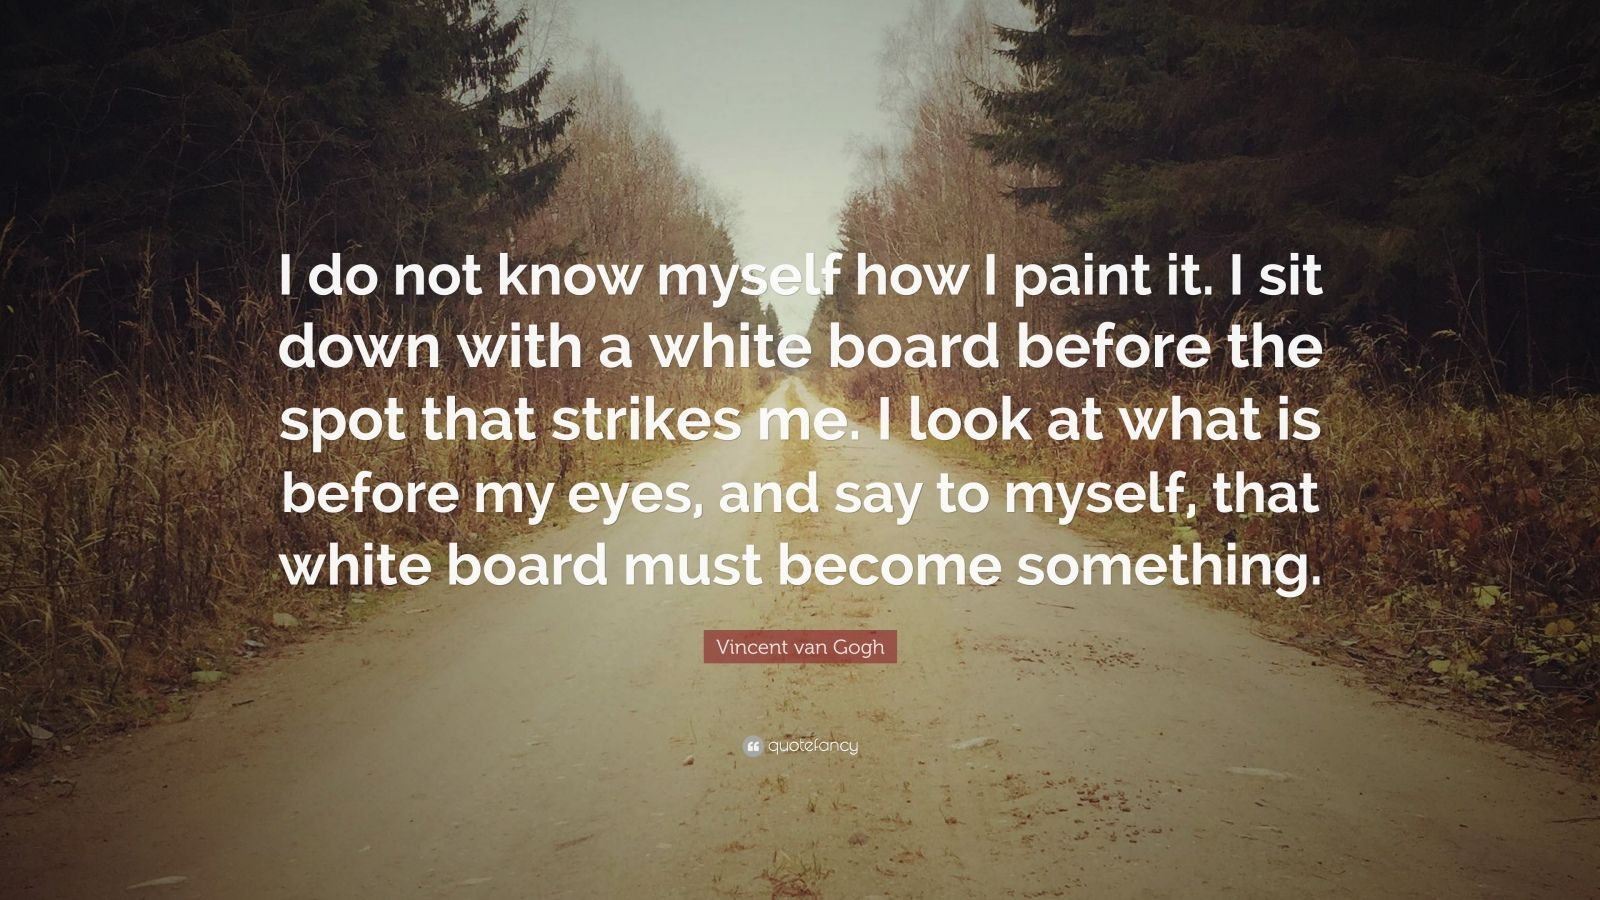 """Vincent van Gogh Quote: """"I do not know myself how I paint it. I sit down with a white board before the spot that strikes me. I look at what is before my eyes, and say to myself, that white board must become something."""""""